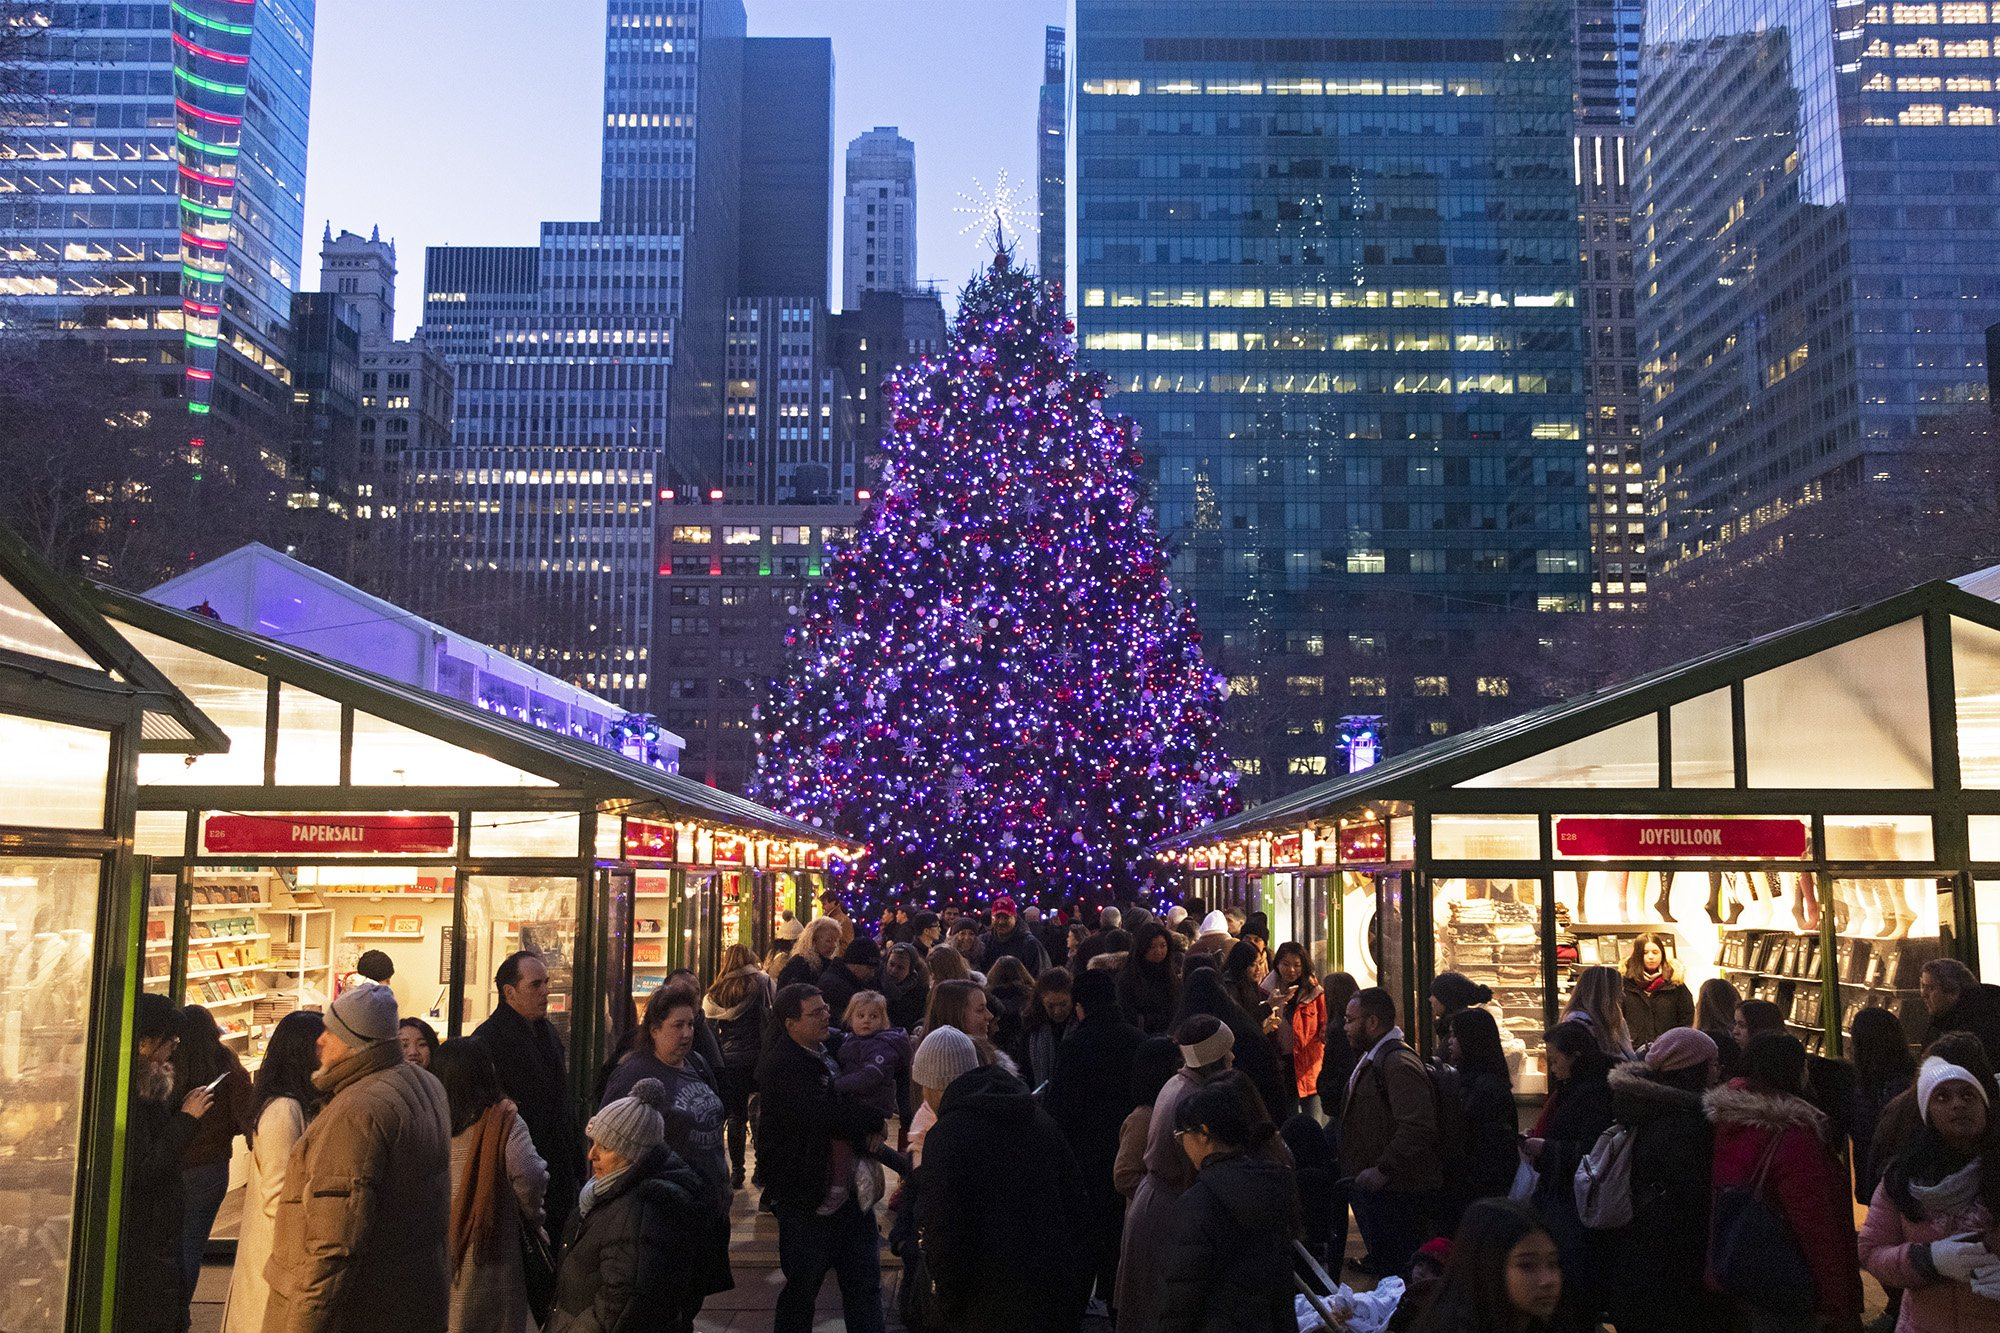 Bryant Park Winter Village shops and Christmas tree